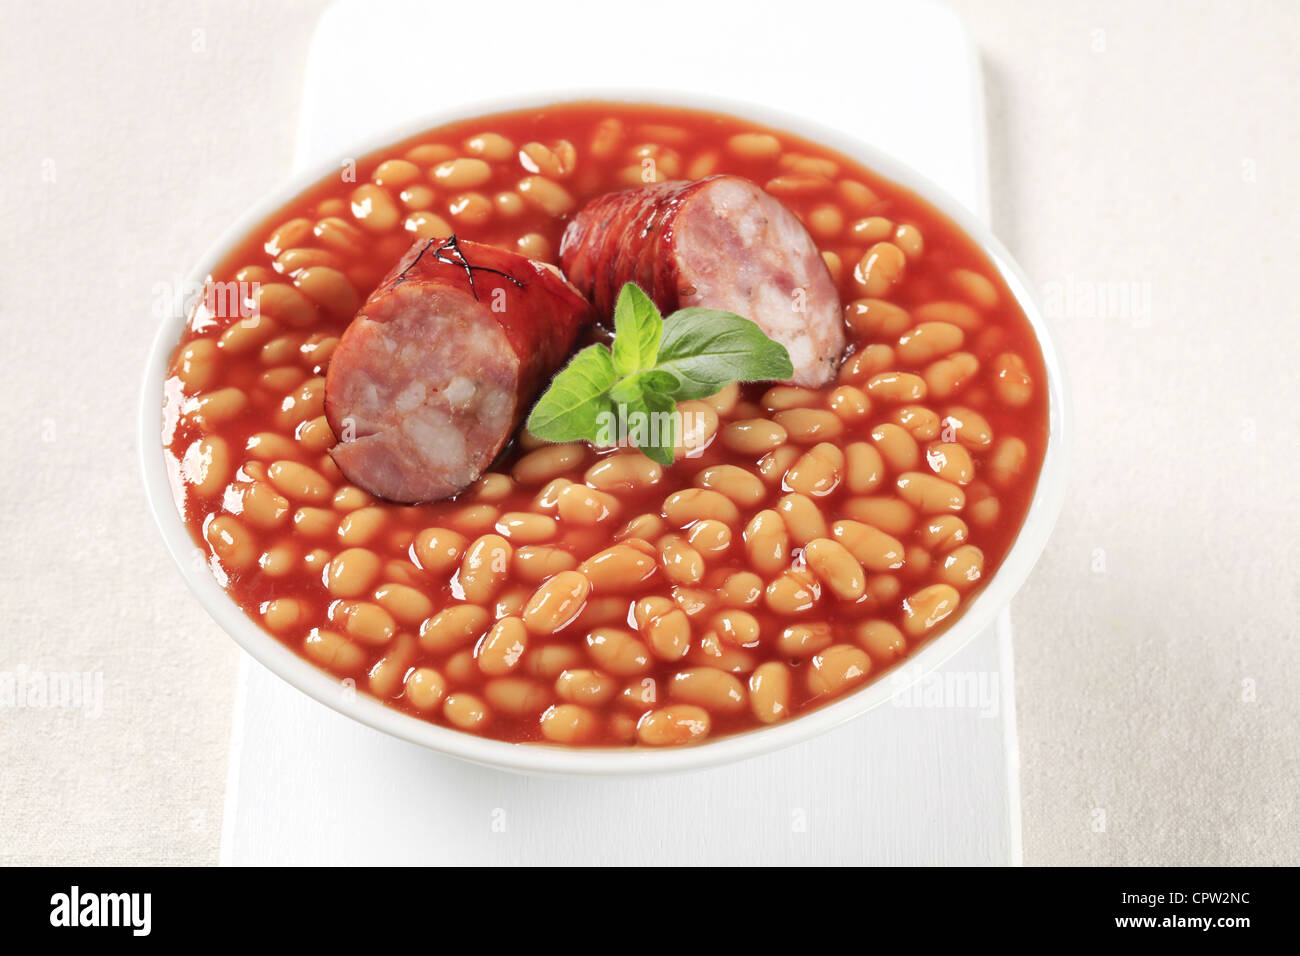 Beans and sausage with red sauce in a white bowl - Stock Image